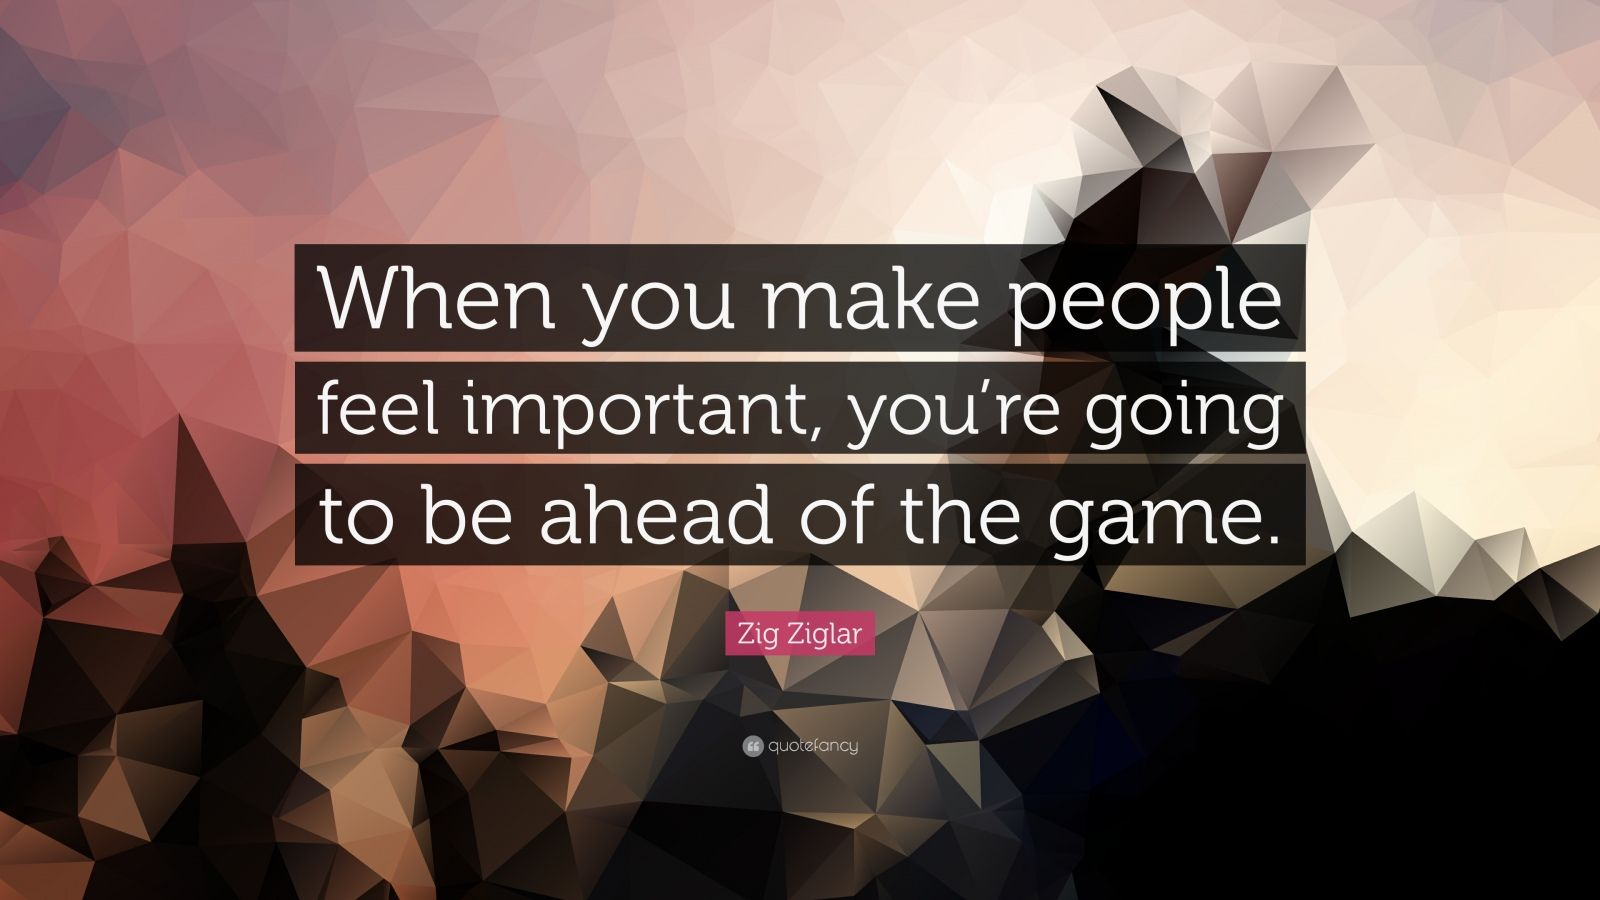 Zig Ziglar Quote When You Make People Feel Important You Re Going To Be Ahead Of The Game